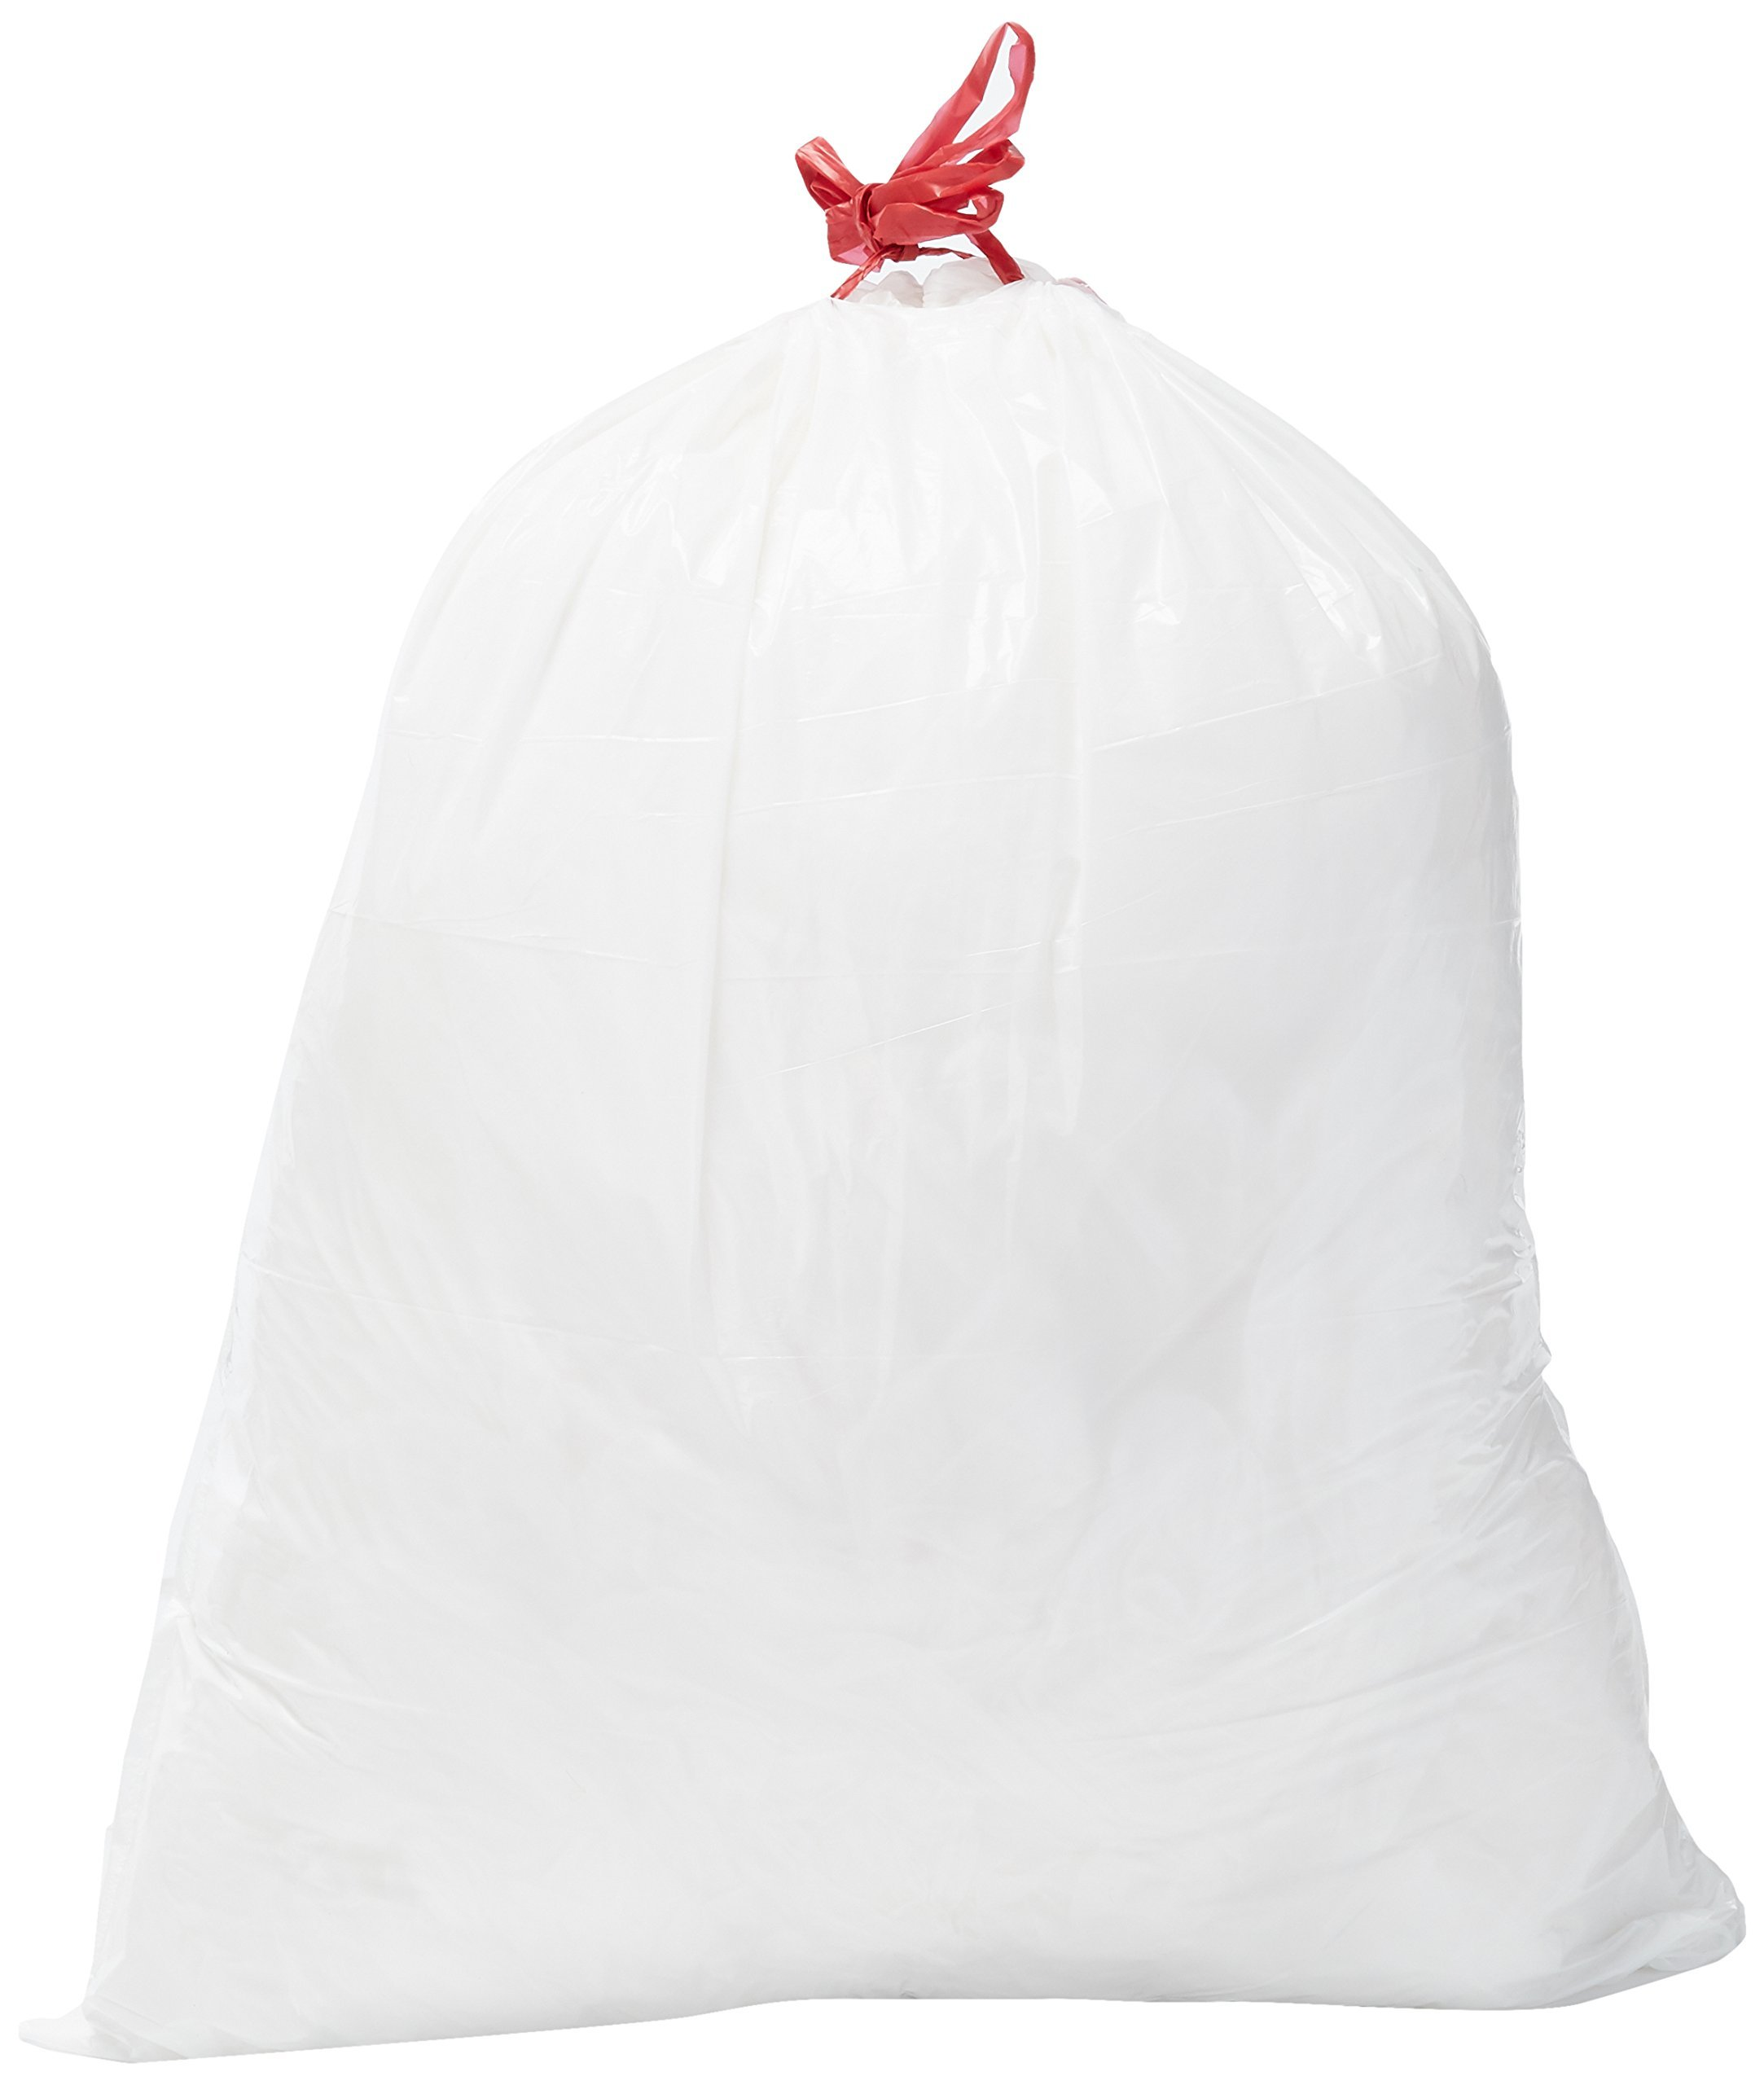 Amazon Brand - Solimo Tall Kitchen Drawstring Trash Bags, Clean Fresh Scent, 13 Gallon, 200 Count by SOLIMO (Image #2)